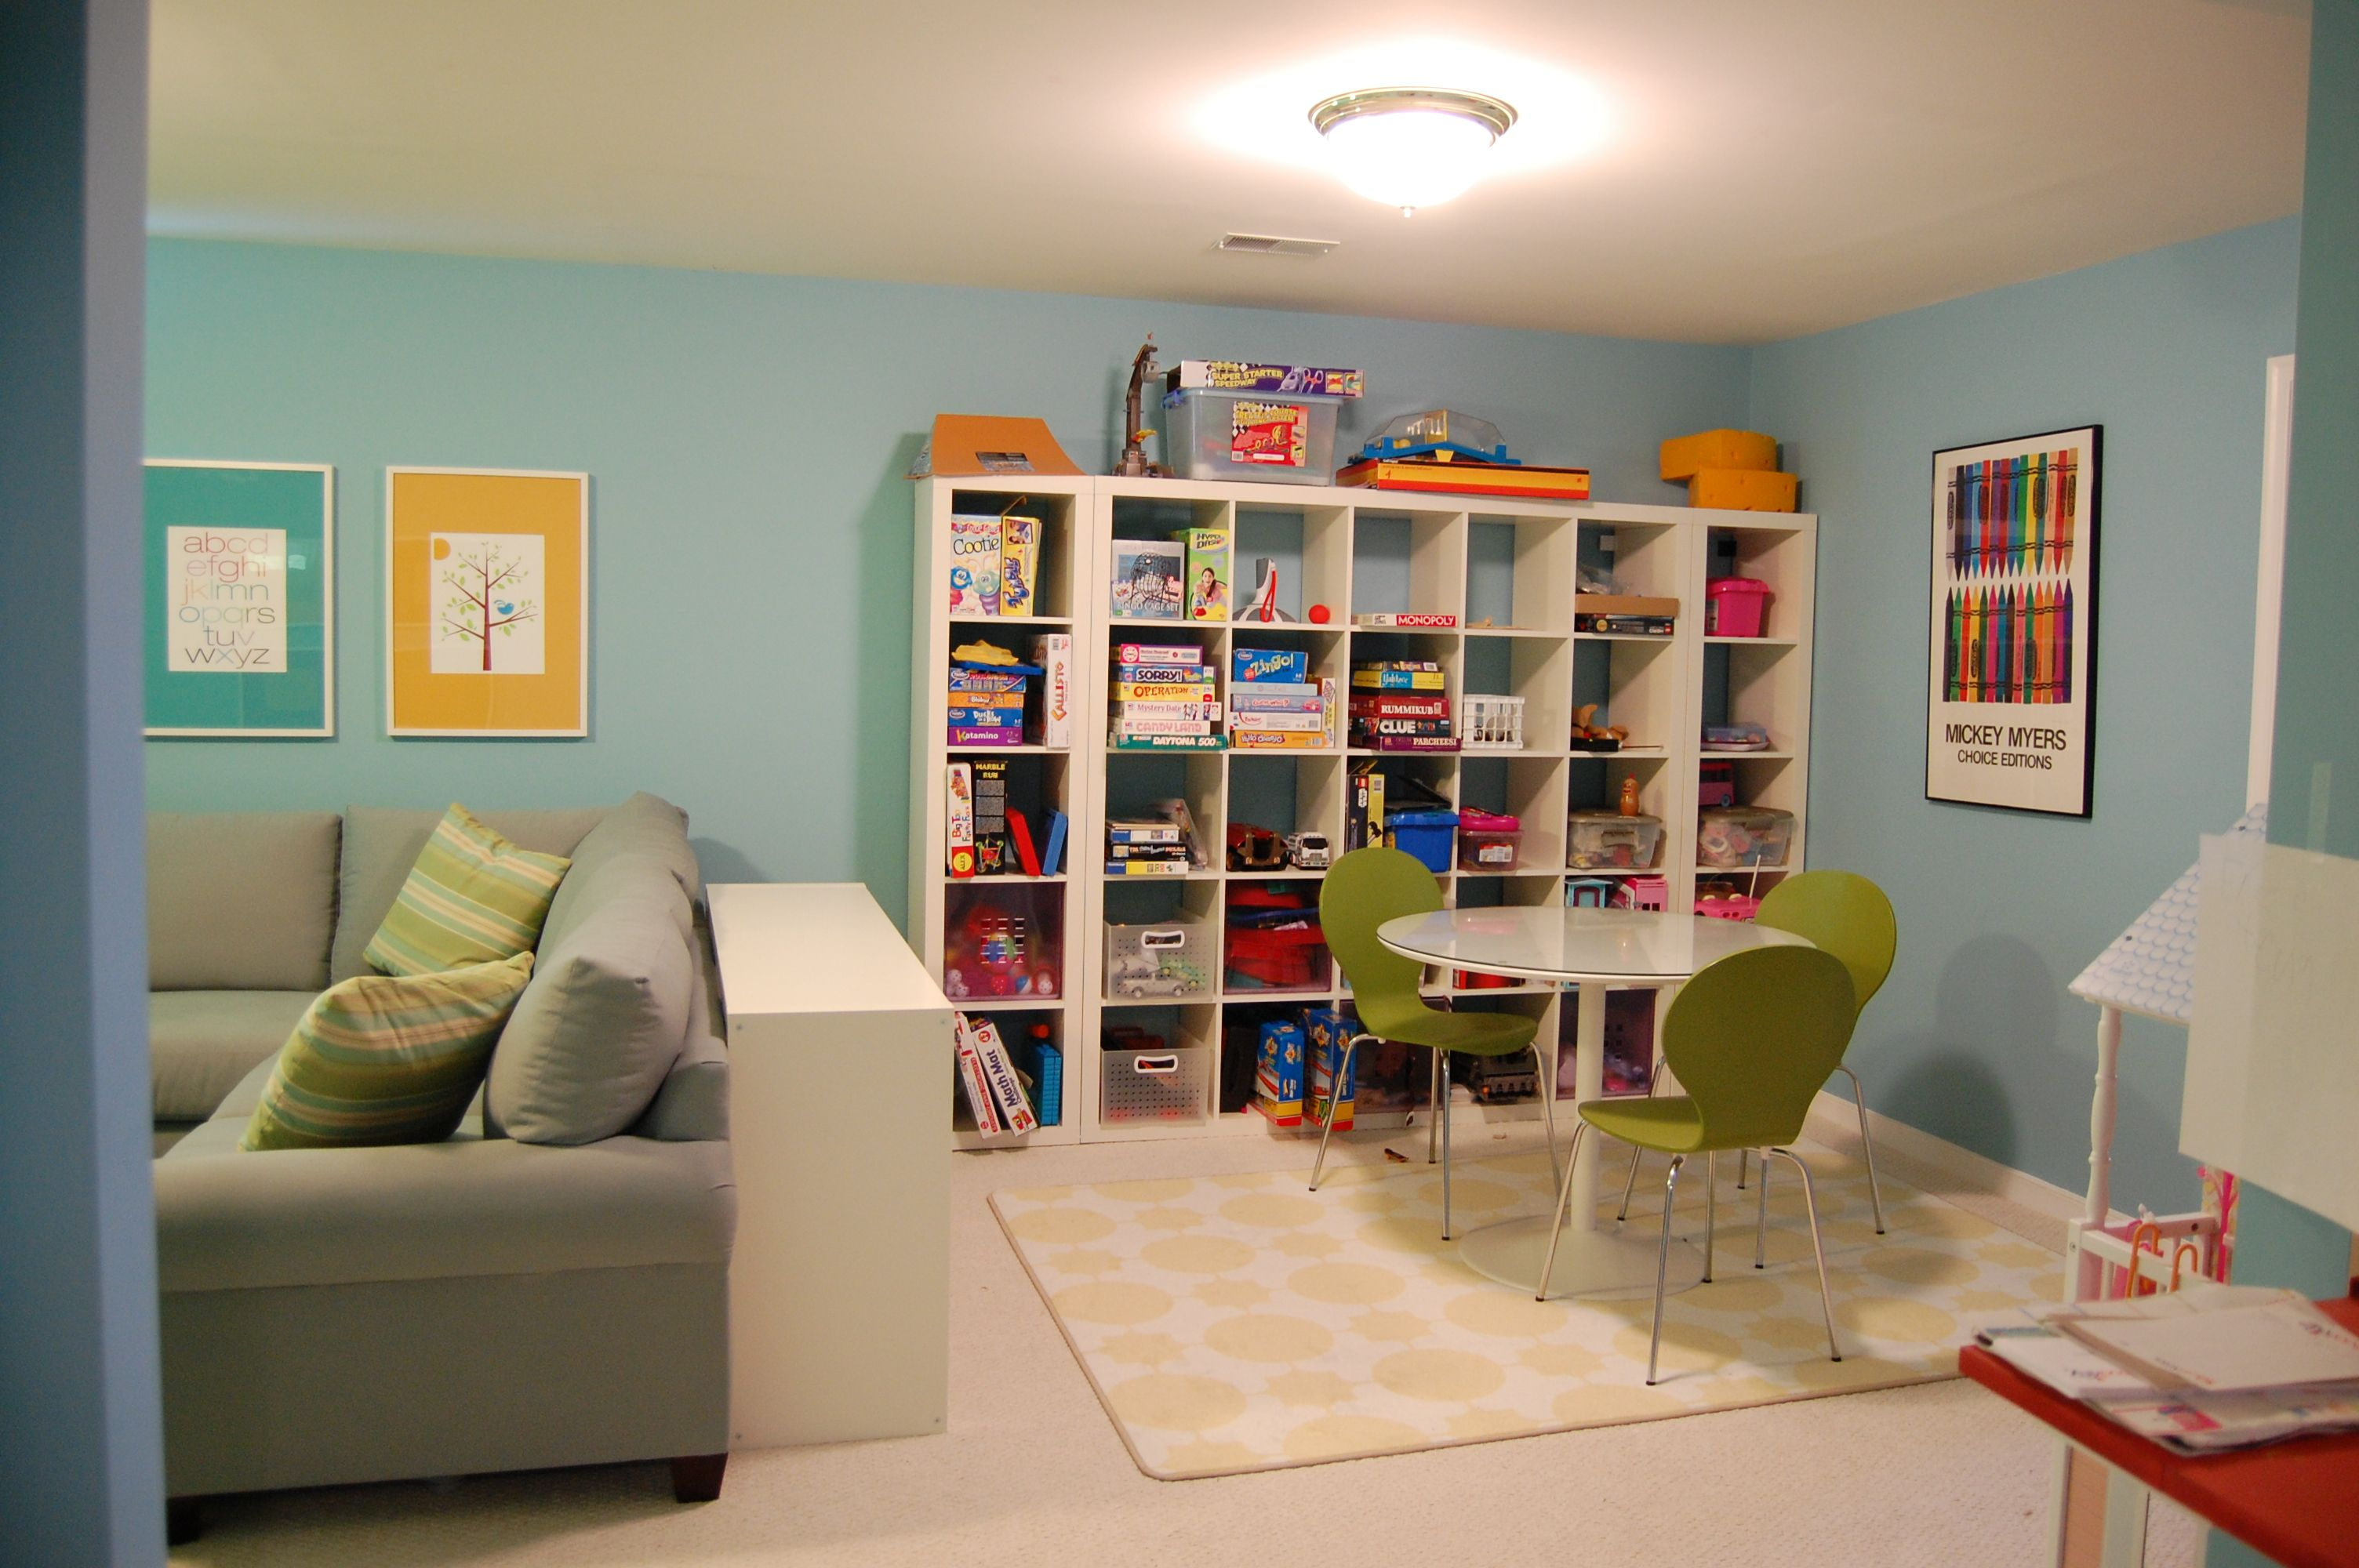 Fun and functional family playroom playrooms room ideas for Organizing living room family picture ideas